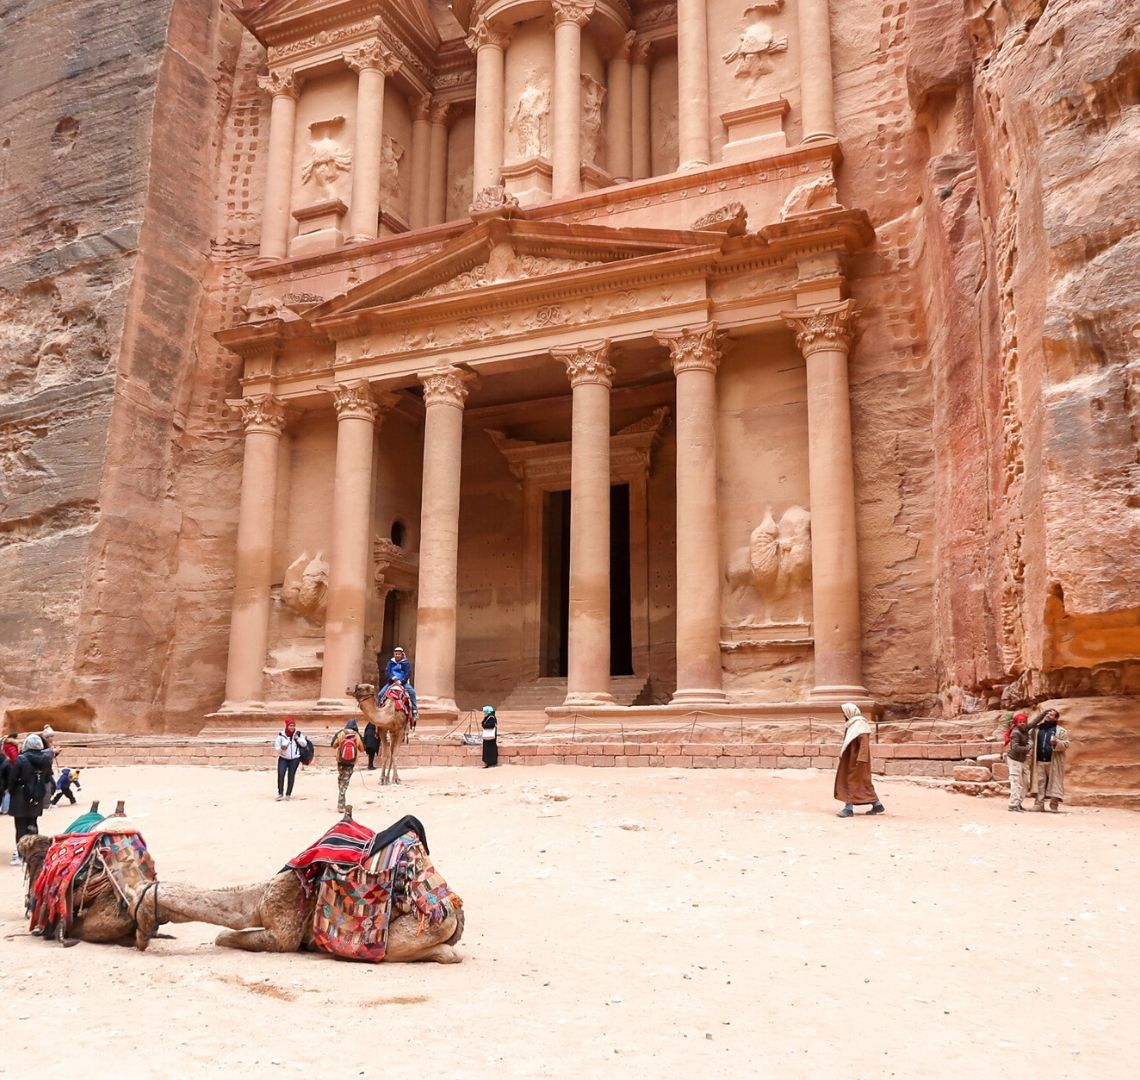 Things To Do In Jordan - Petra's Treasury stands majestically in the background with some tourists taking pictures of it. Two camels are lying down in the sand in the foreground.